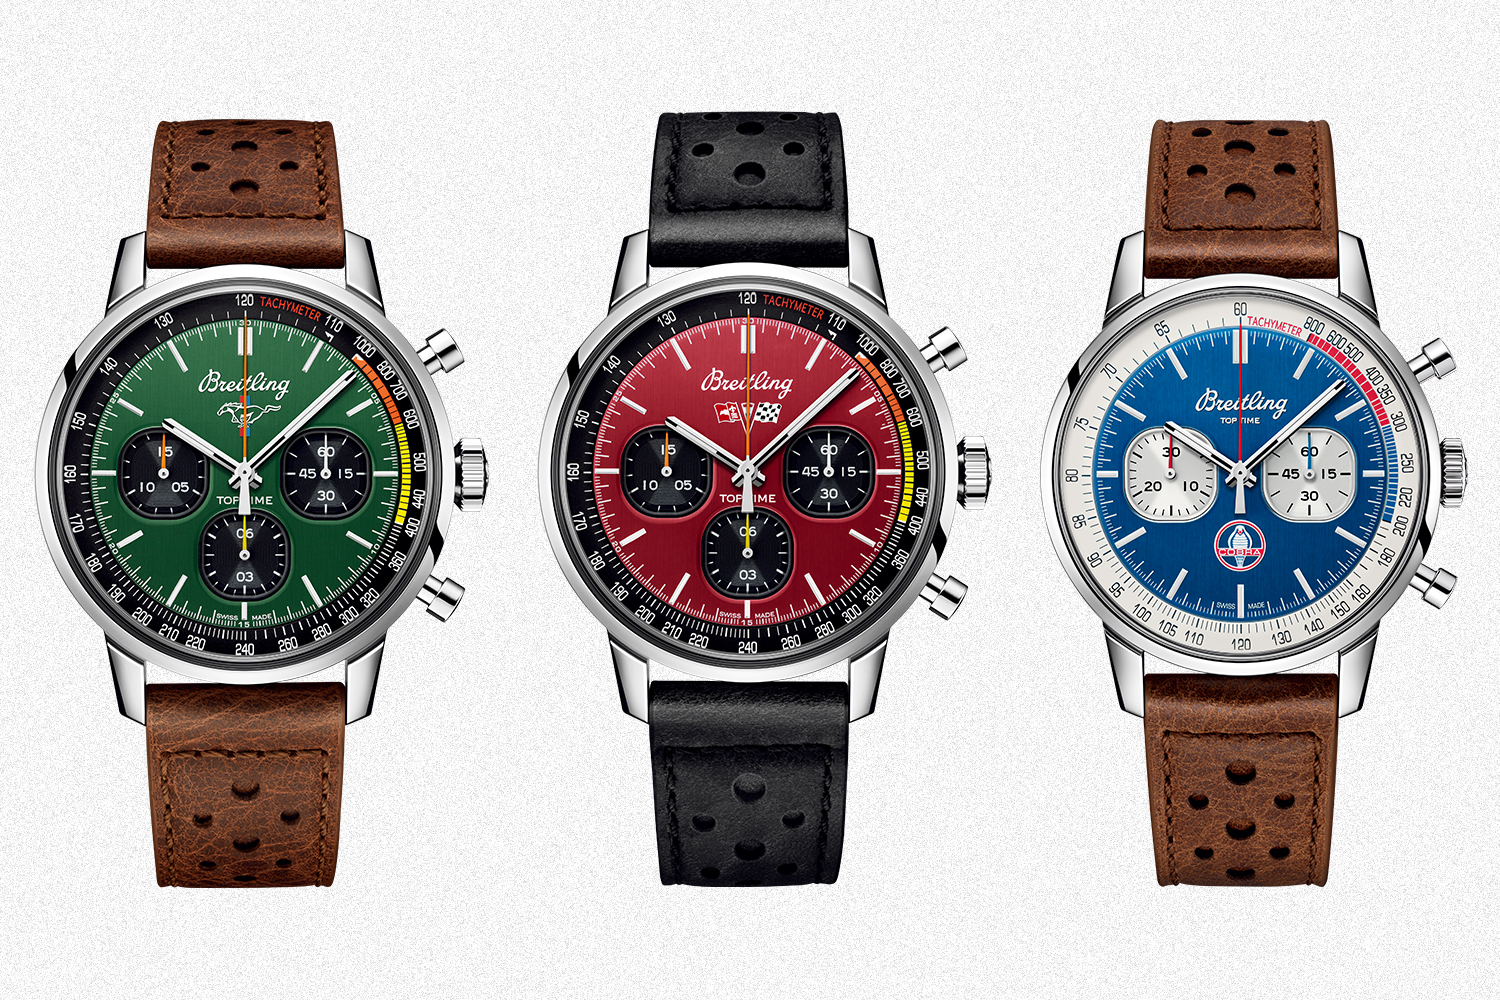 The three watches from Breitling's Top Time Classic Cars Capsule Collection, including a green Ford Mustang, red Chevrolet Corvette Sting Ray and blue Shelby Cobra timepiece